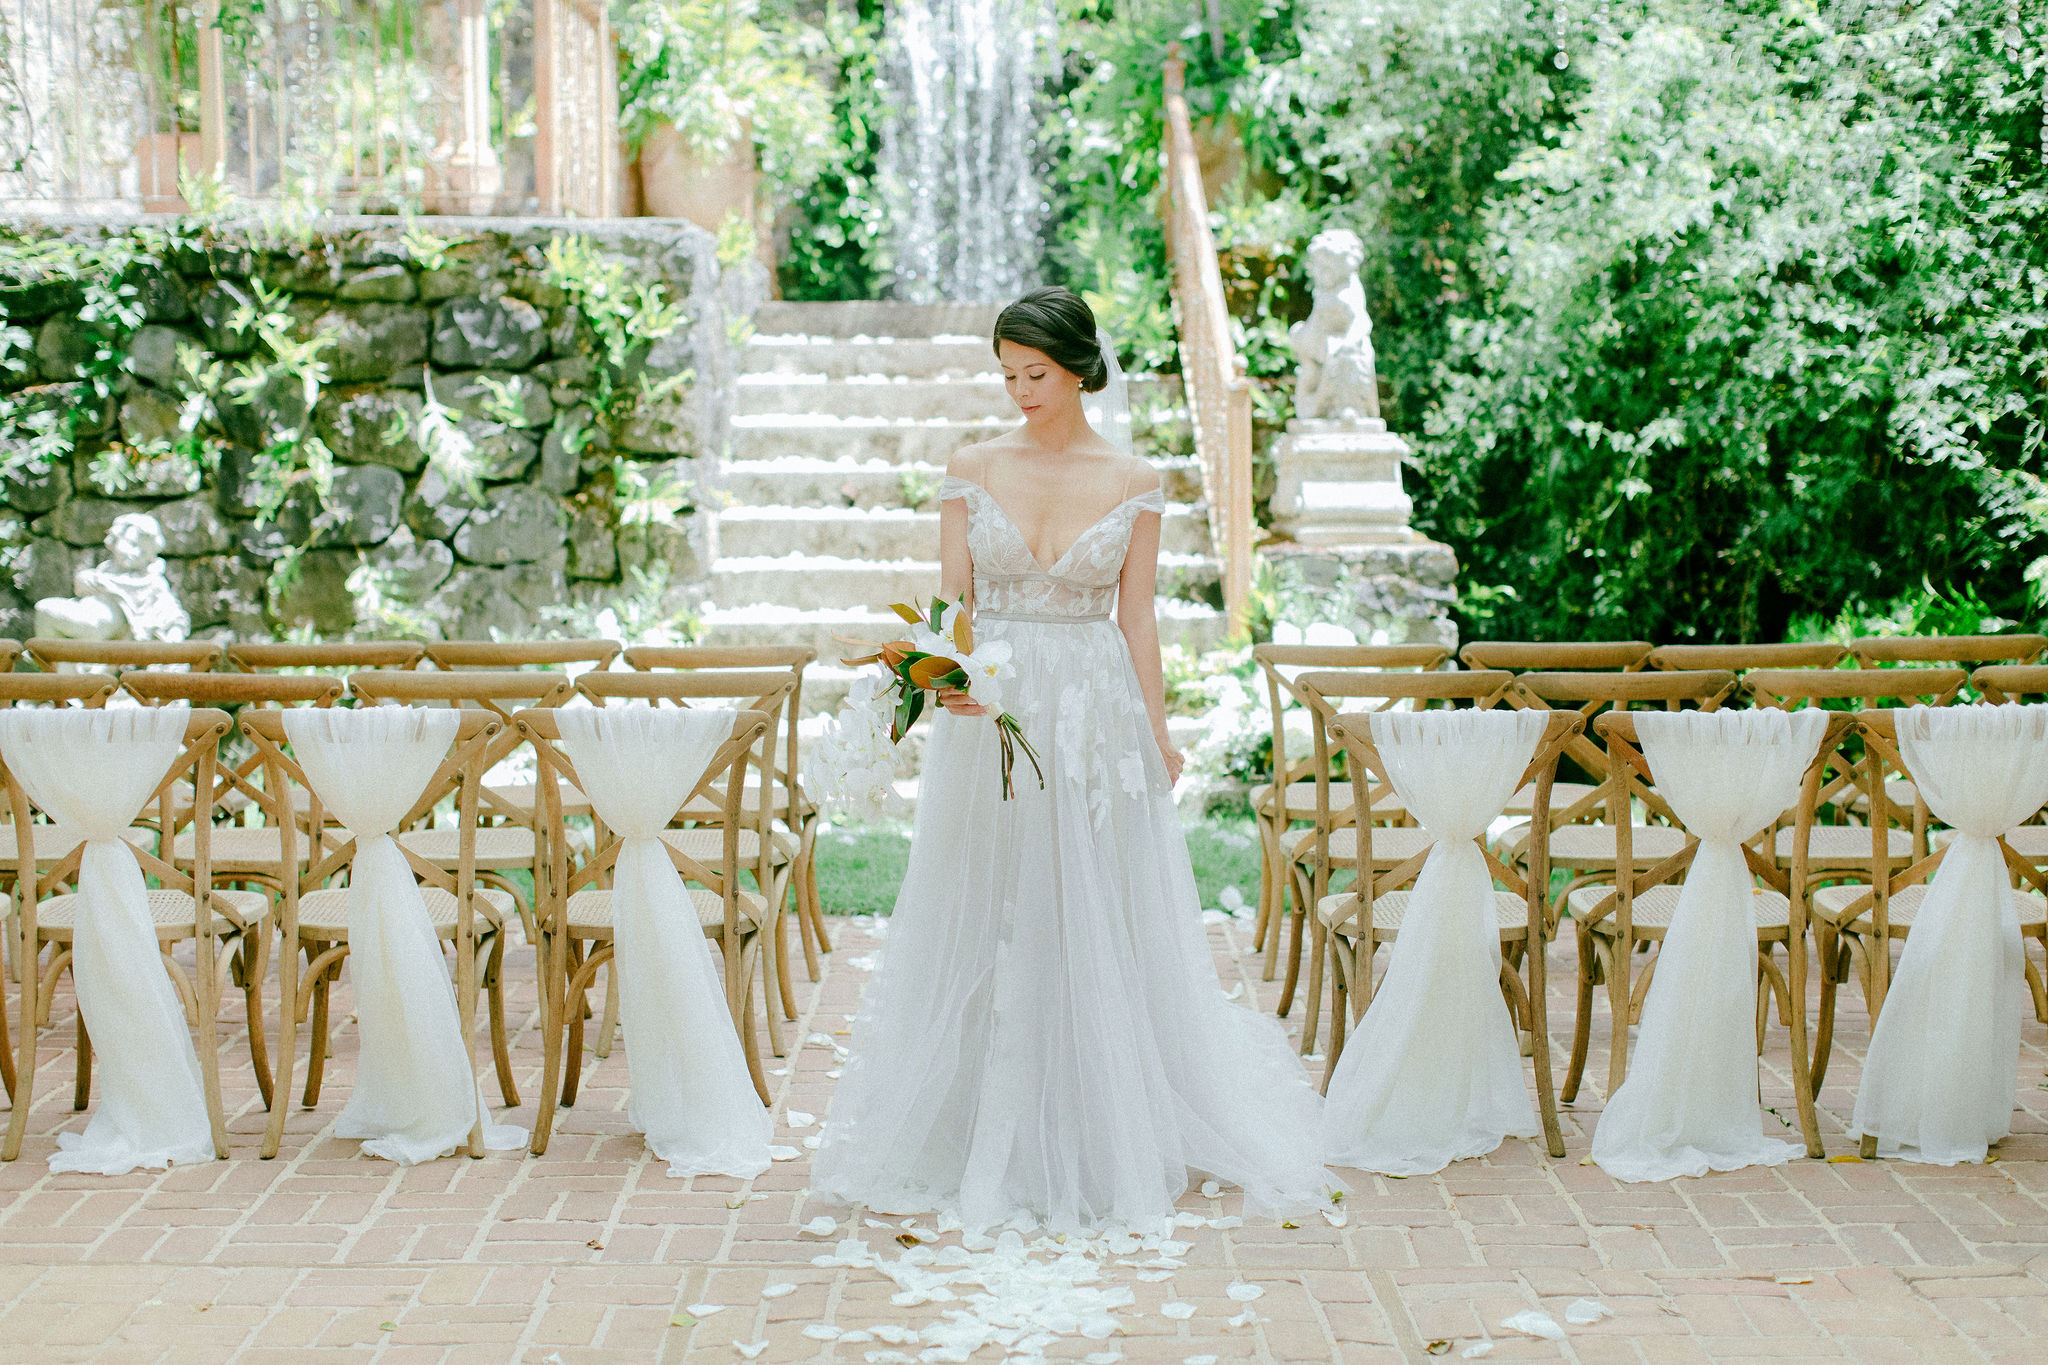 bride standing with bouquet, surrounded by gold chairs in front of waterfall